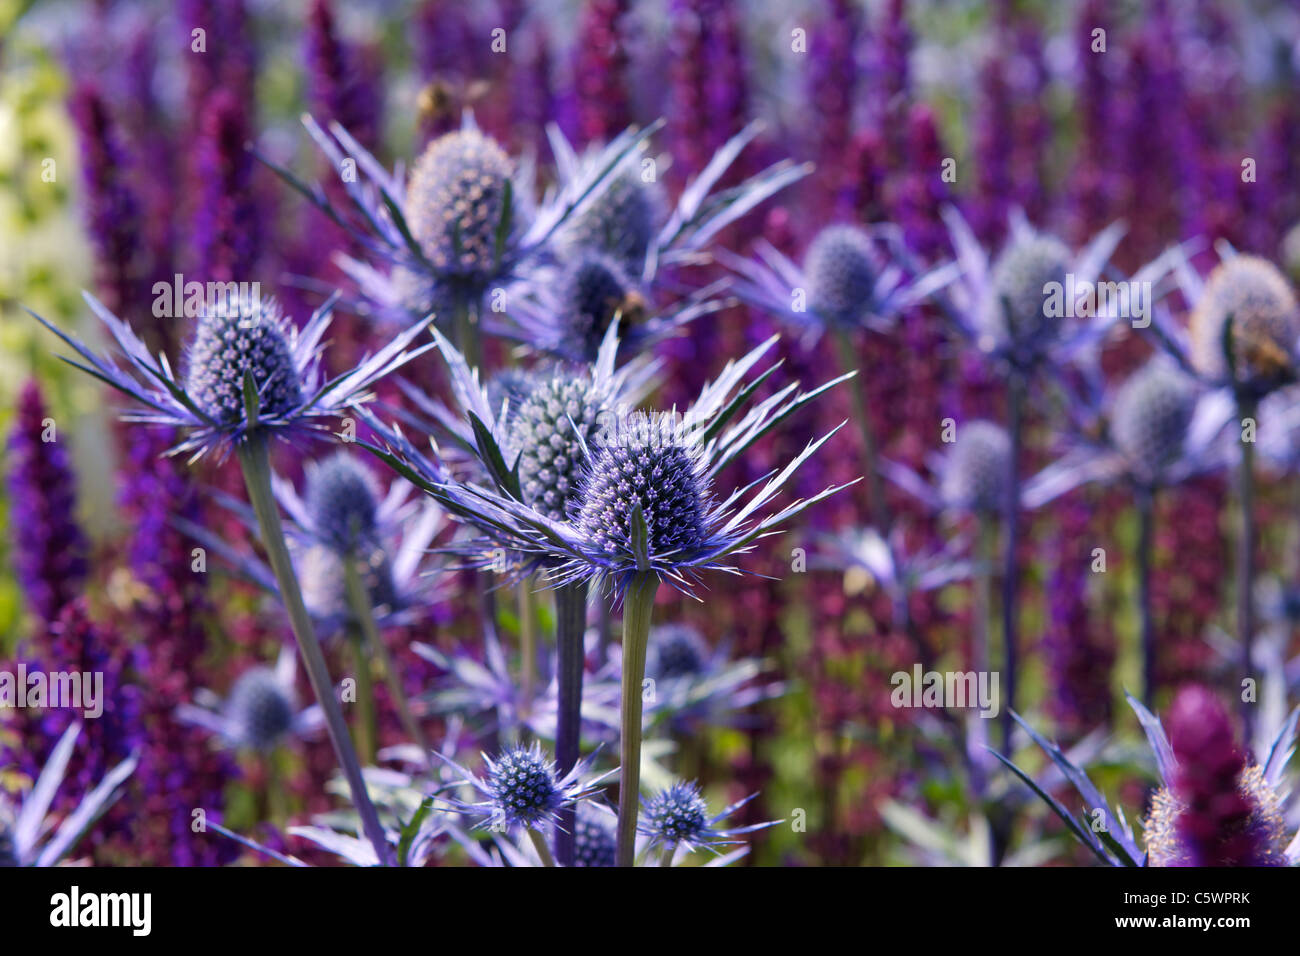 A Flower Bed In North Yorkshire Full Of Blue Thistle Like Sea Holly